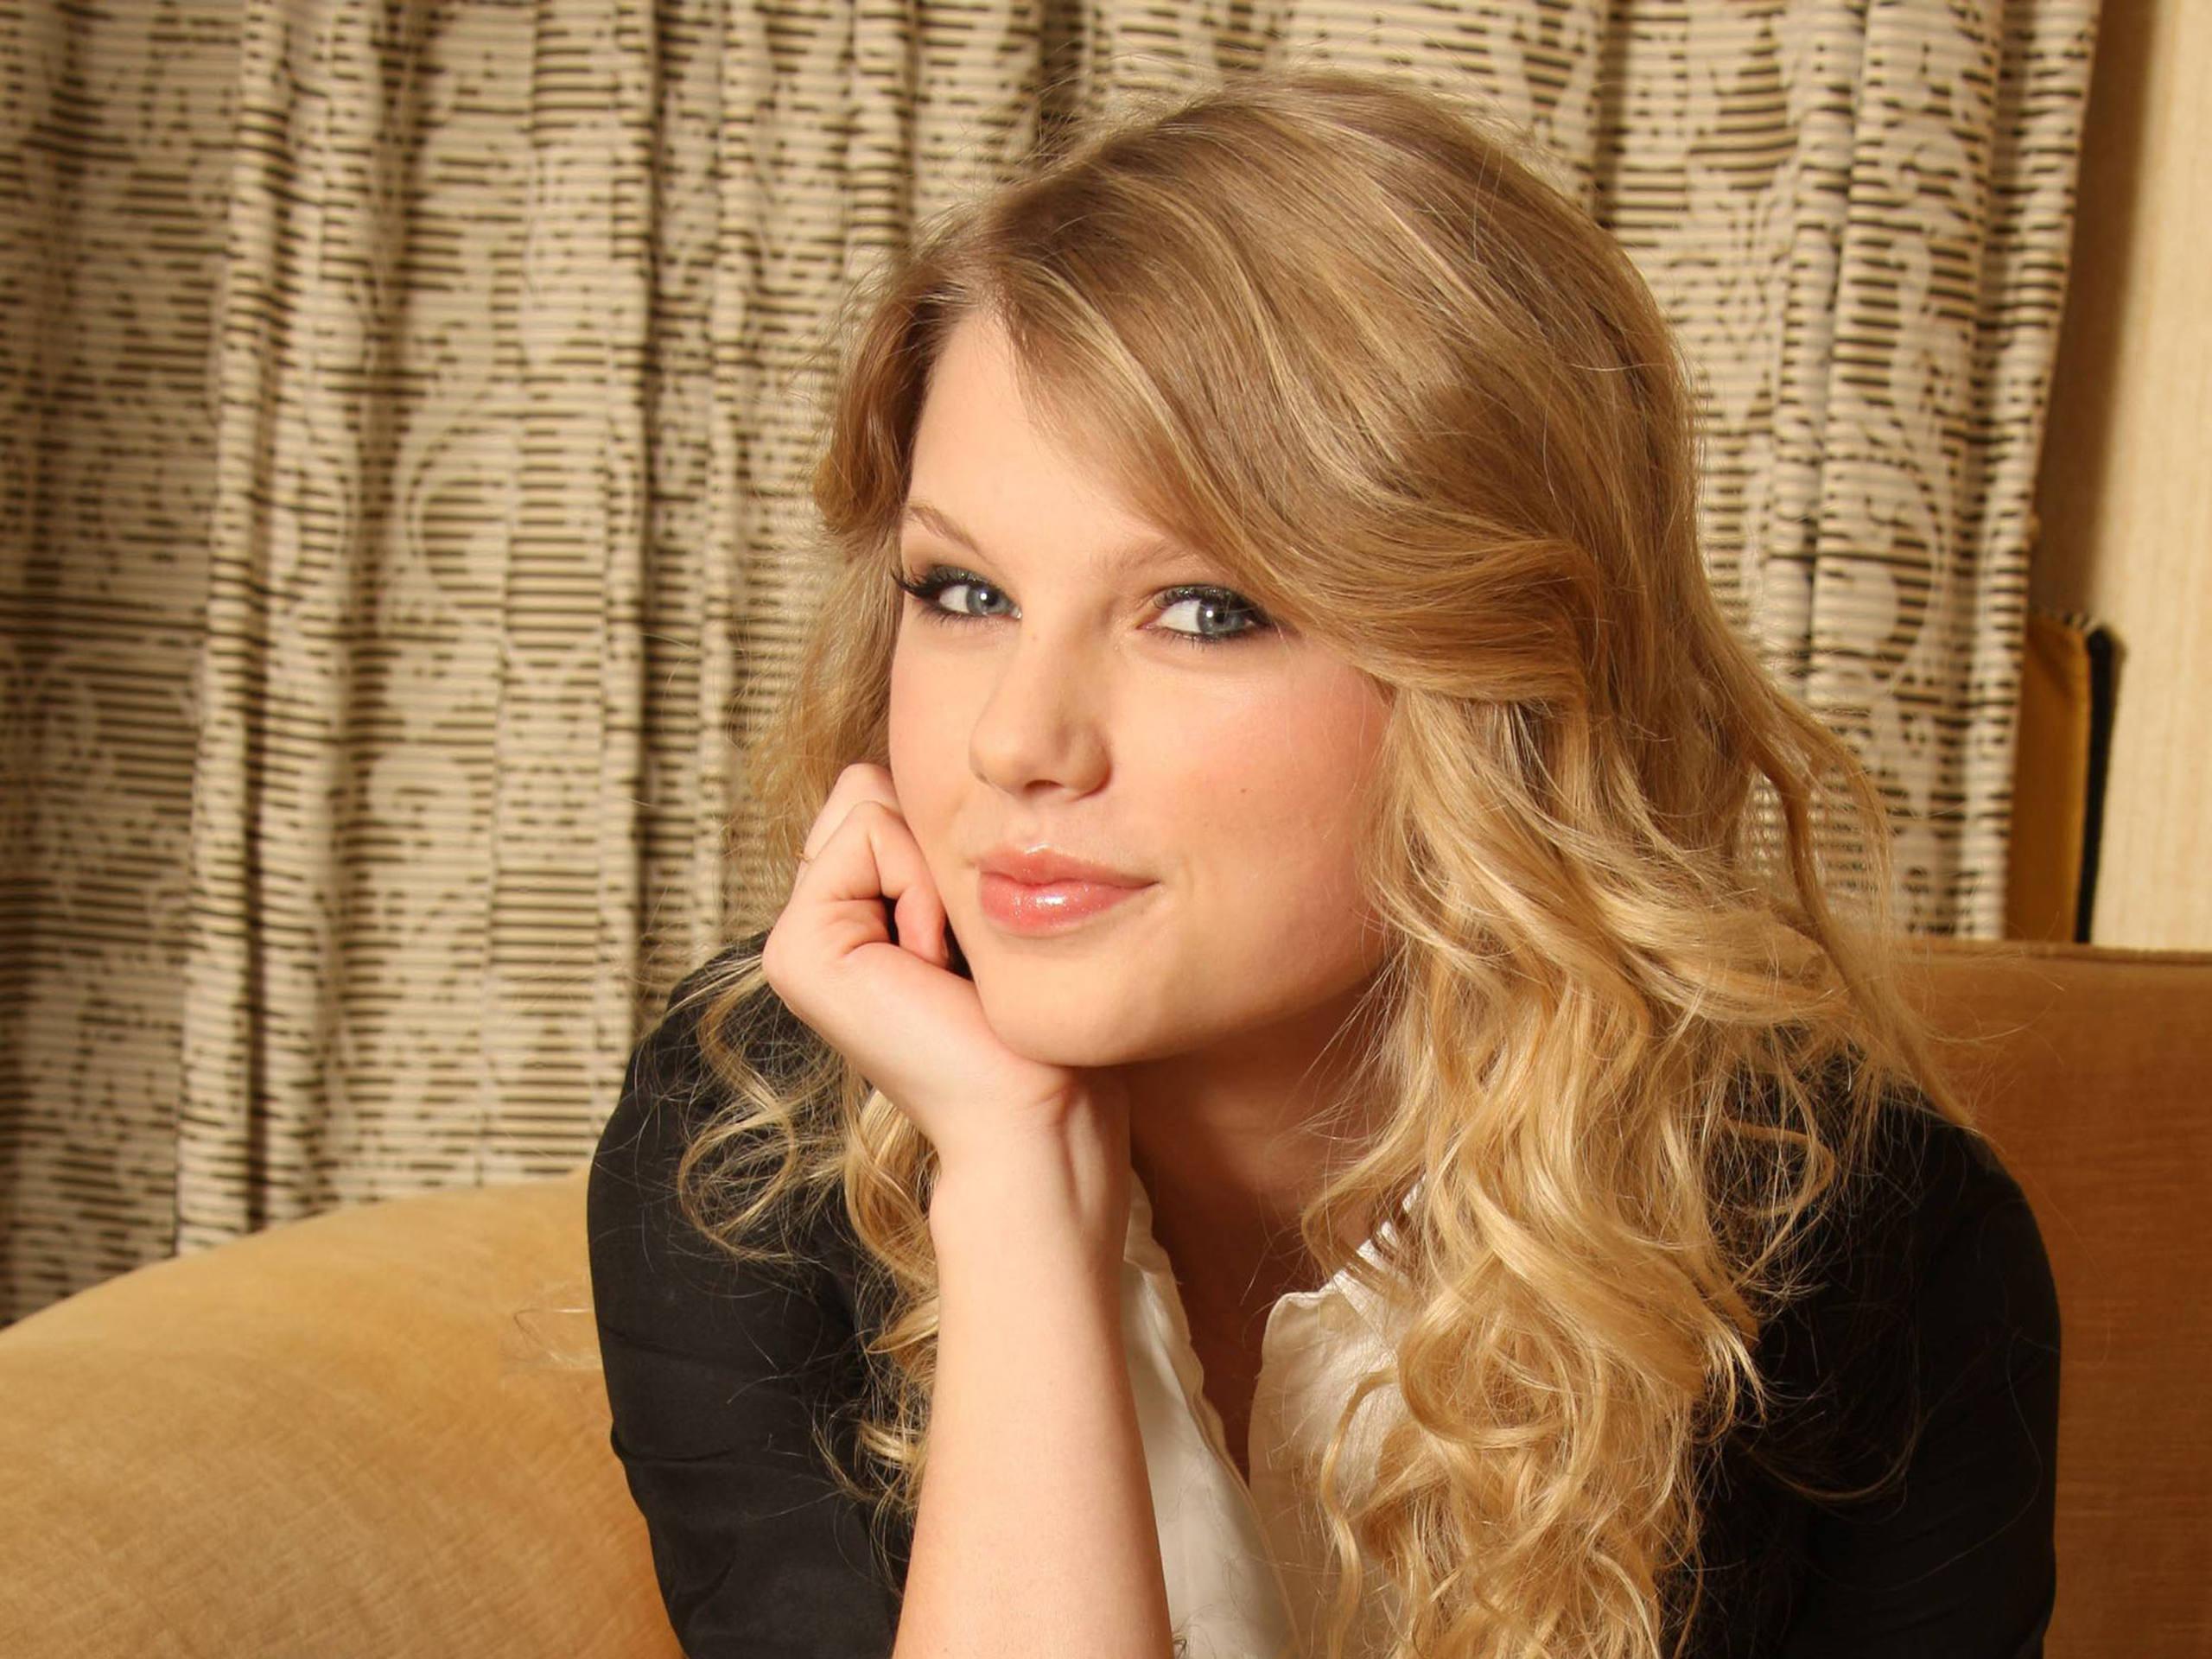 taylor swift | free desktop wallpapers for widescreen, hd and mobile